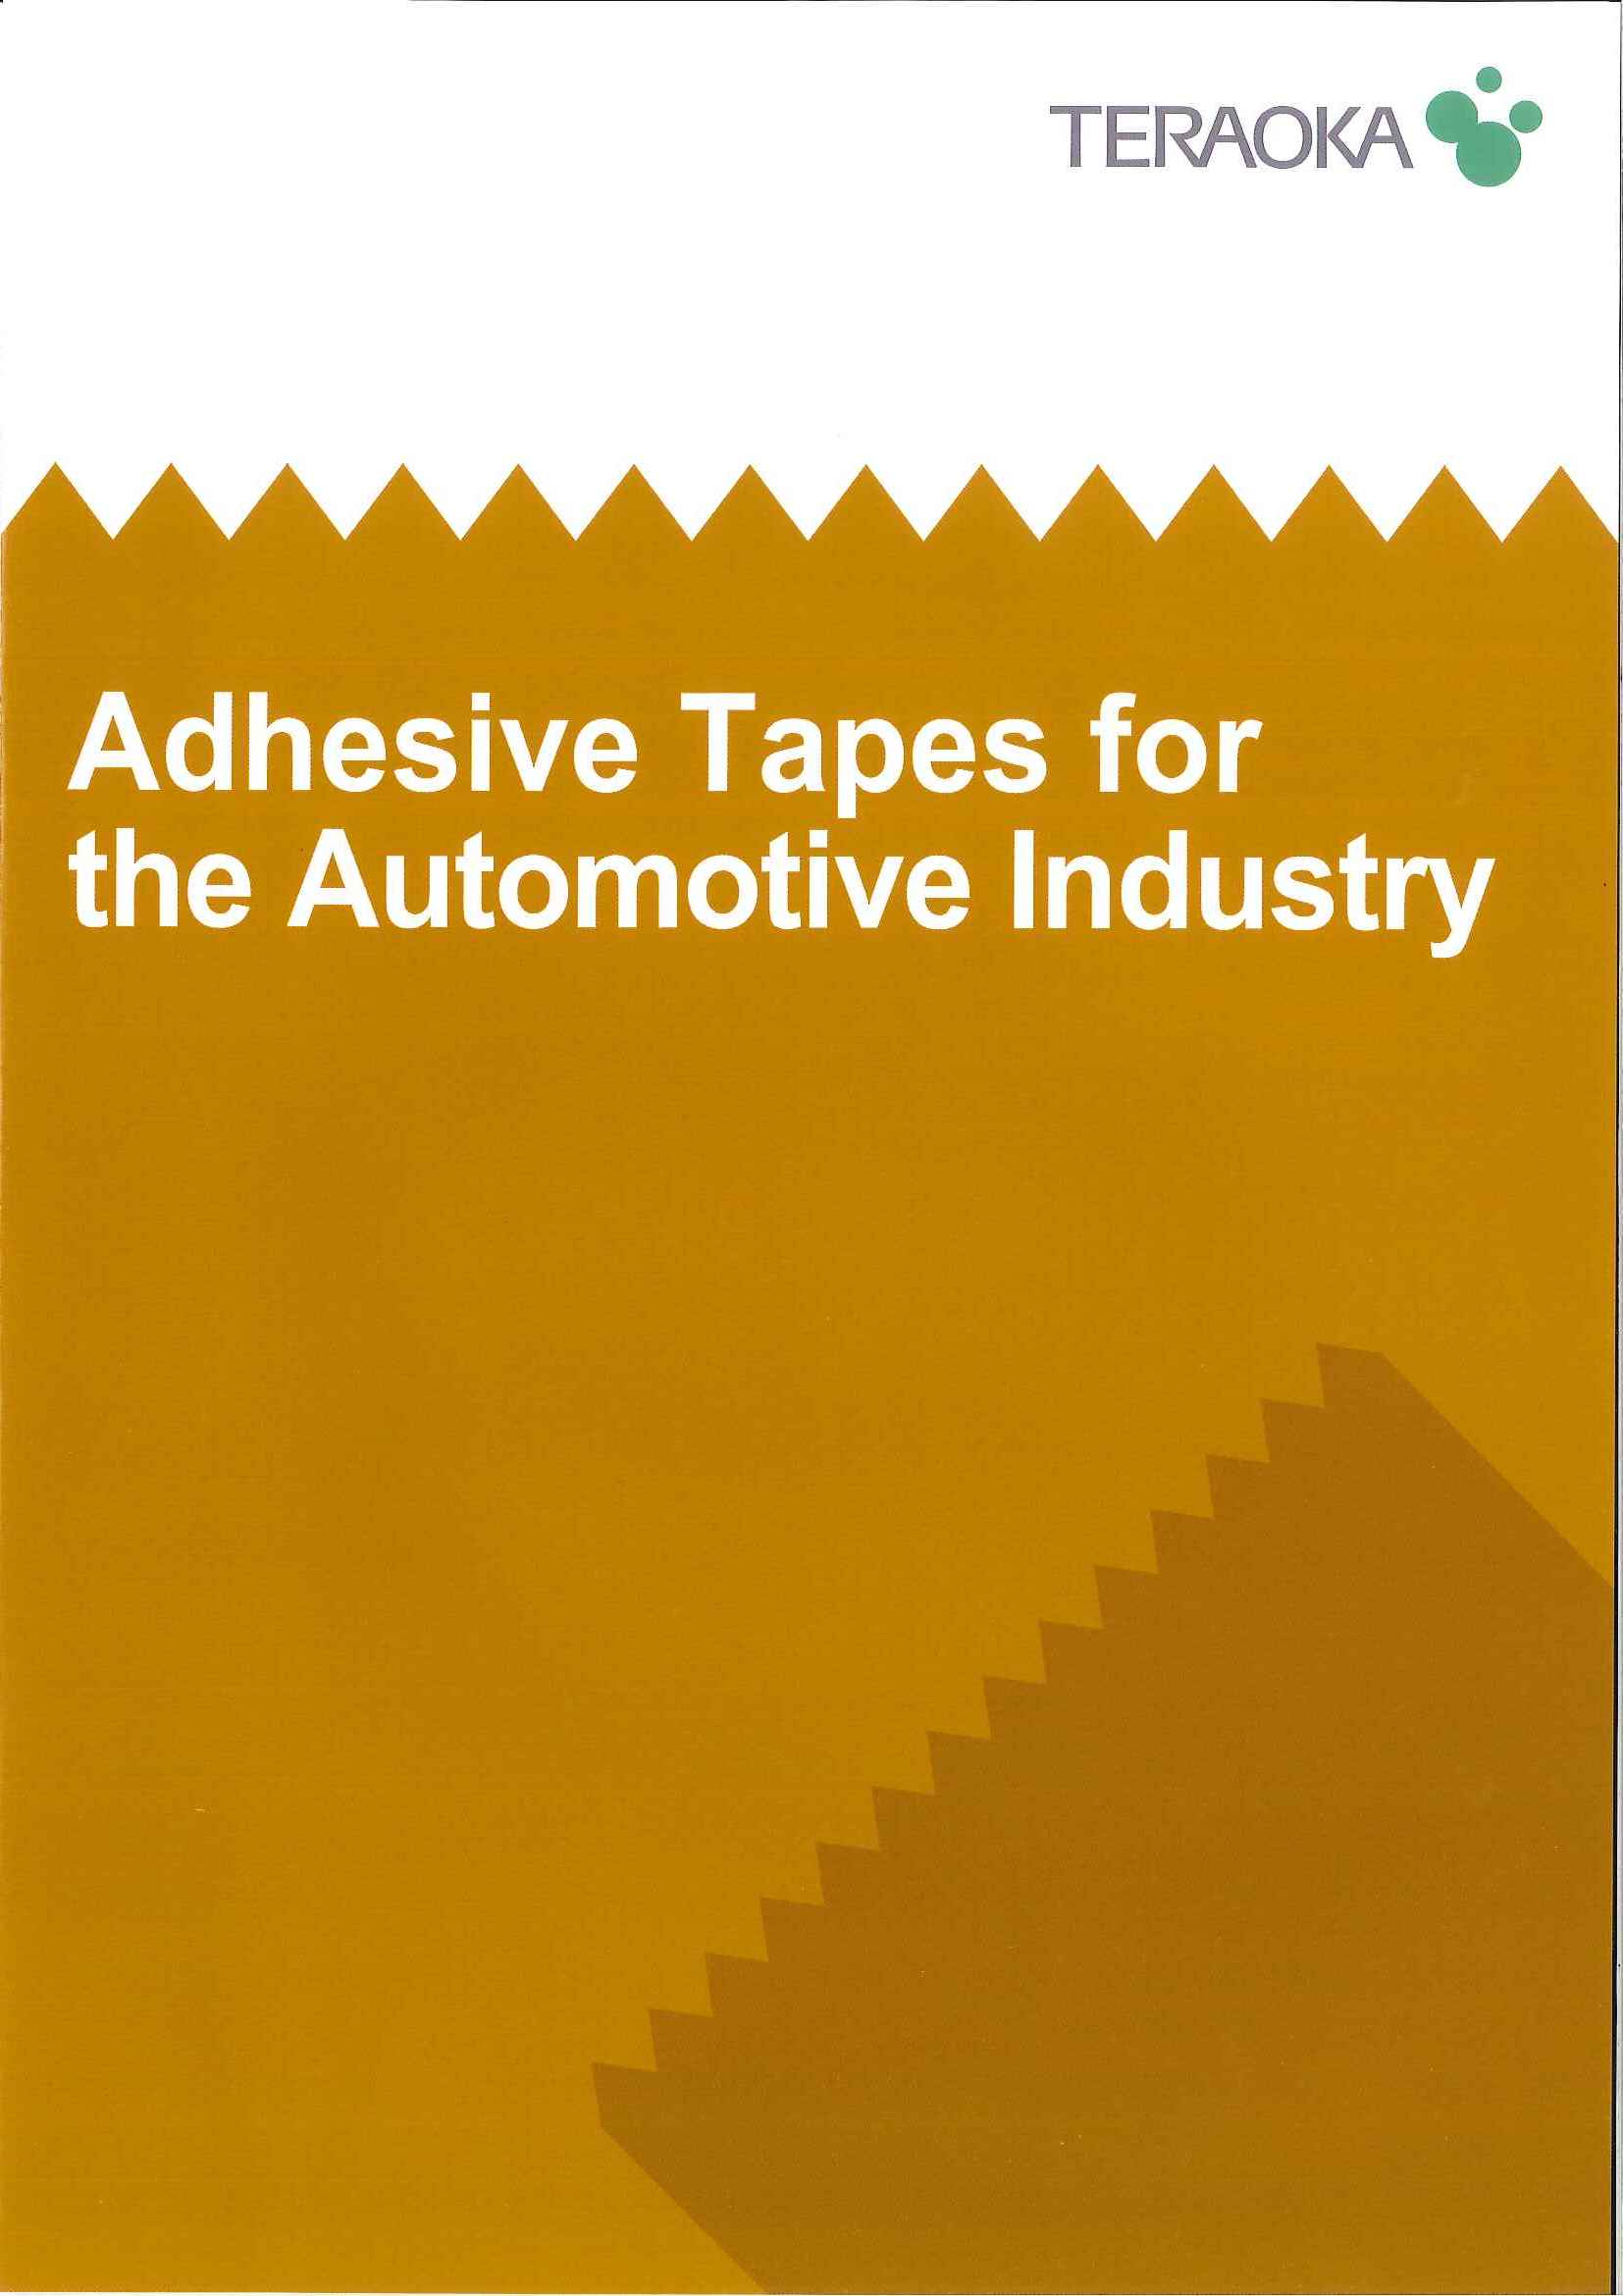 Adhesive Tapes for the Automotive Industry